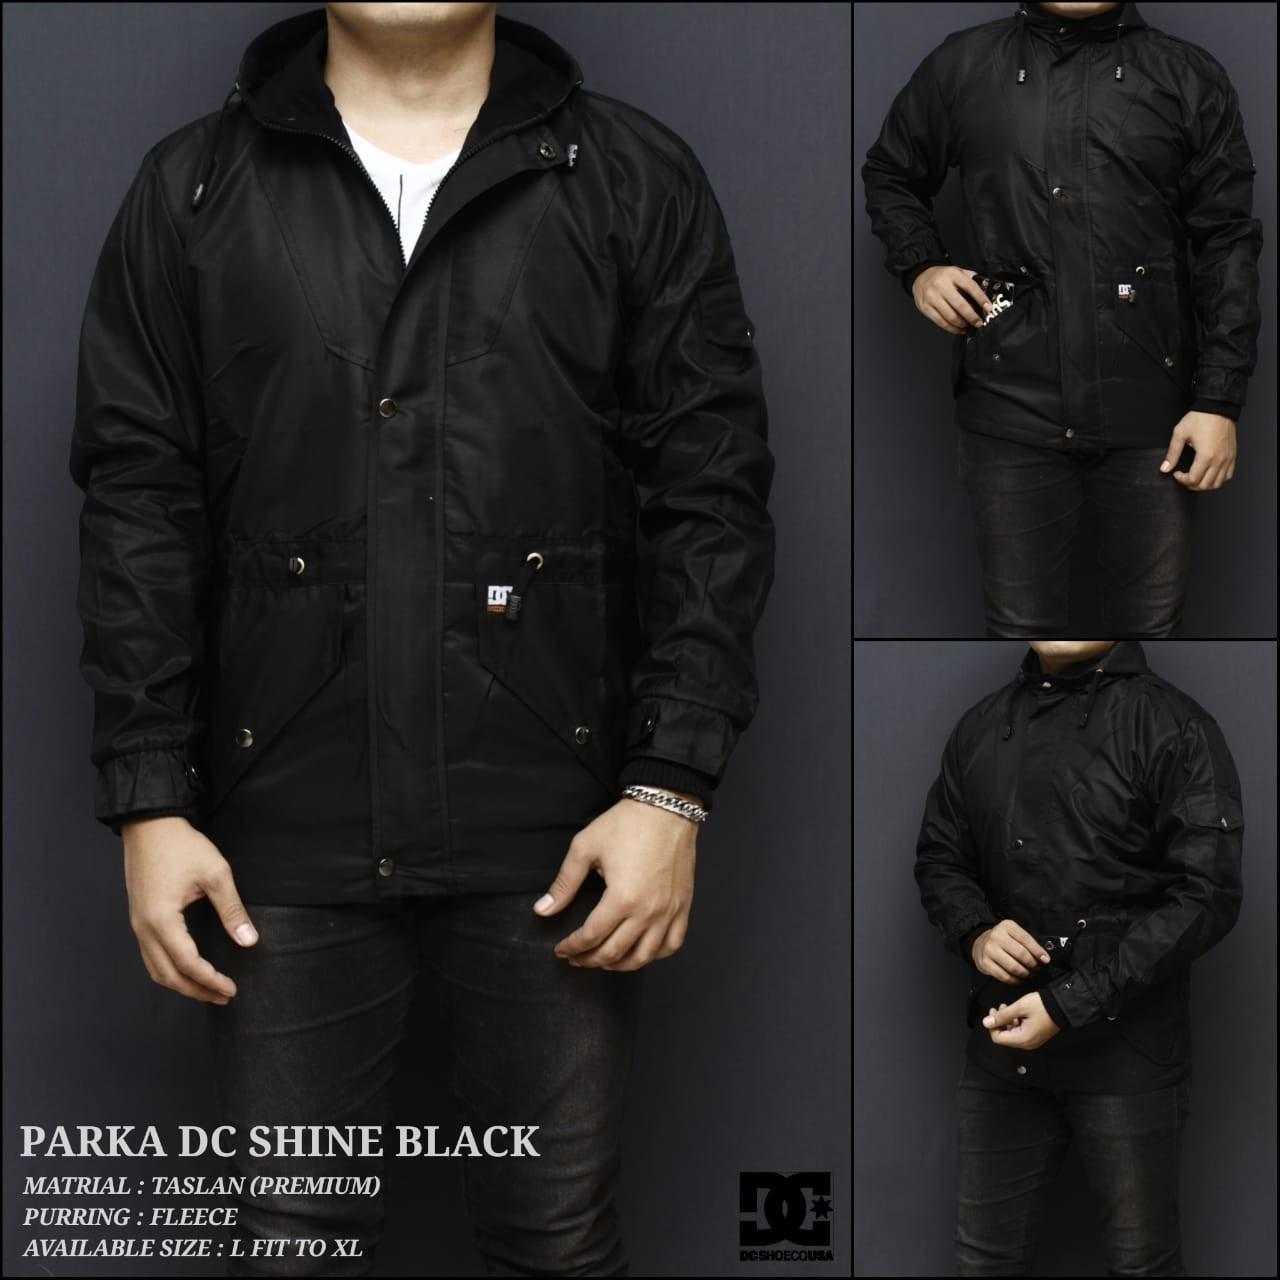 Buy Sell Cheapest Jaket Dc Parka Best Quality Product Deals Bulak Balik Ga Shine Black Keren Jl010938